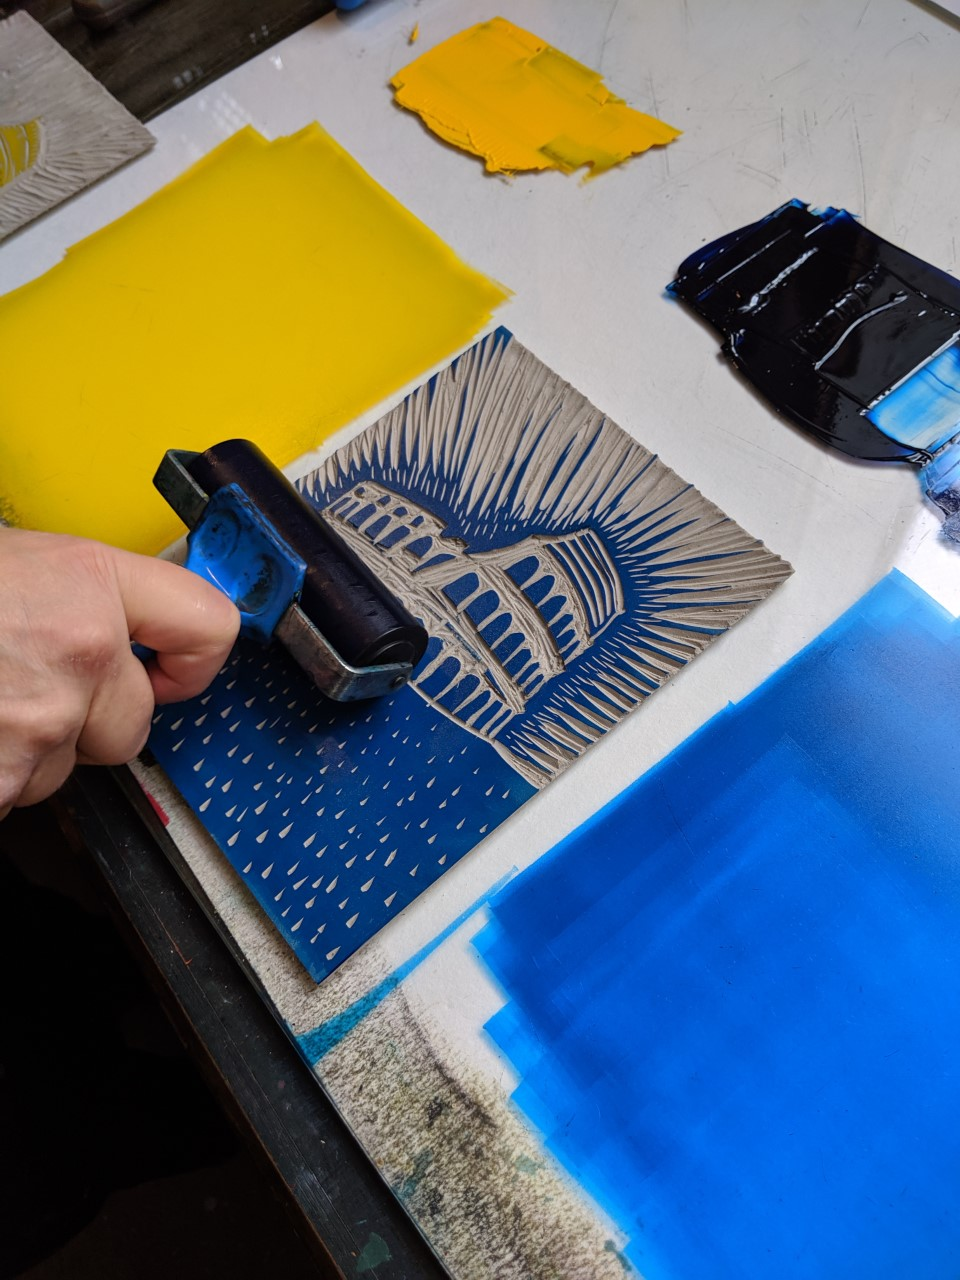 Colour Linocut workshop - weekend Tickets, Sat 11 Jan 2020